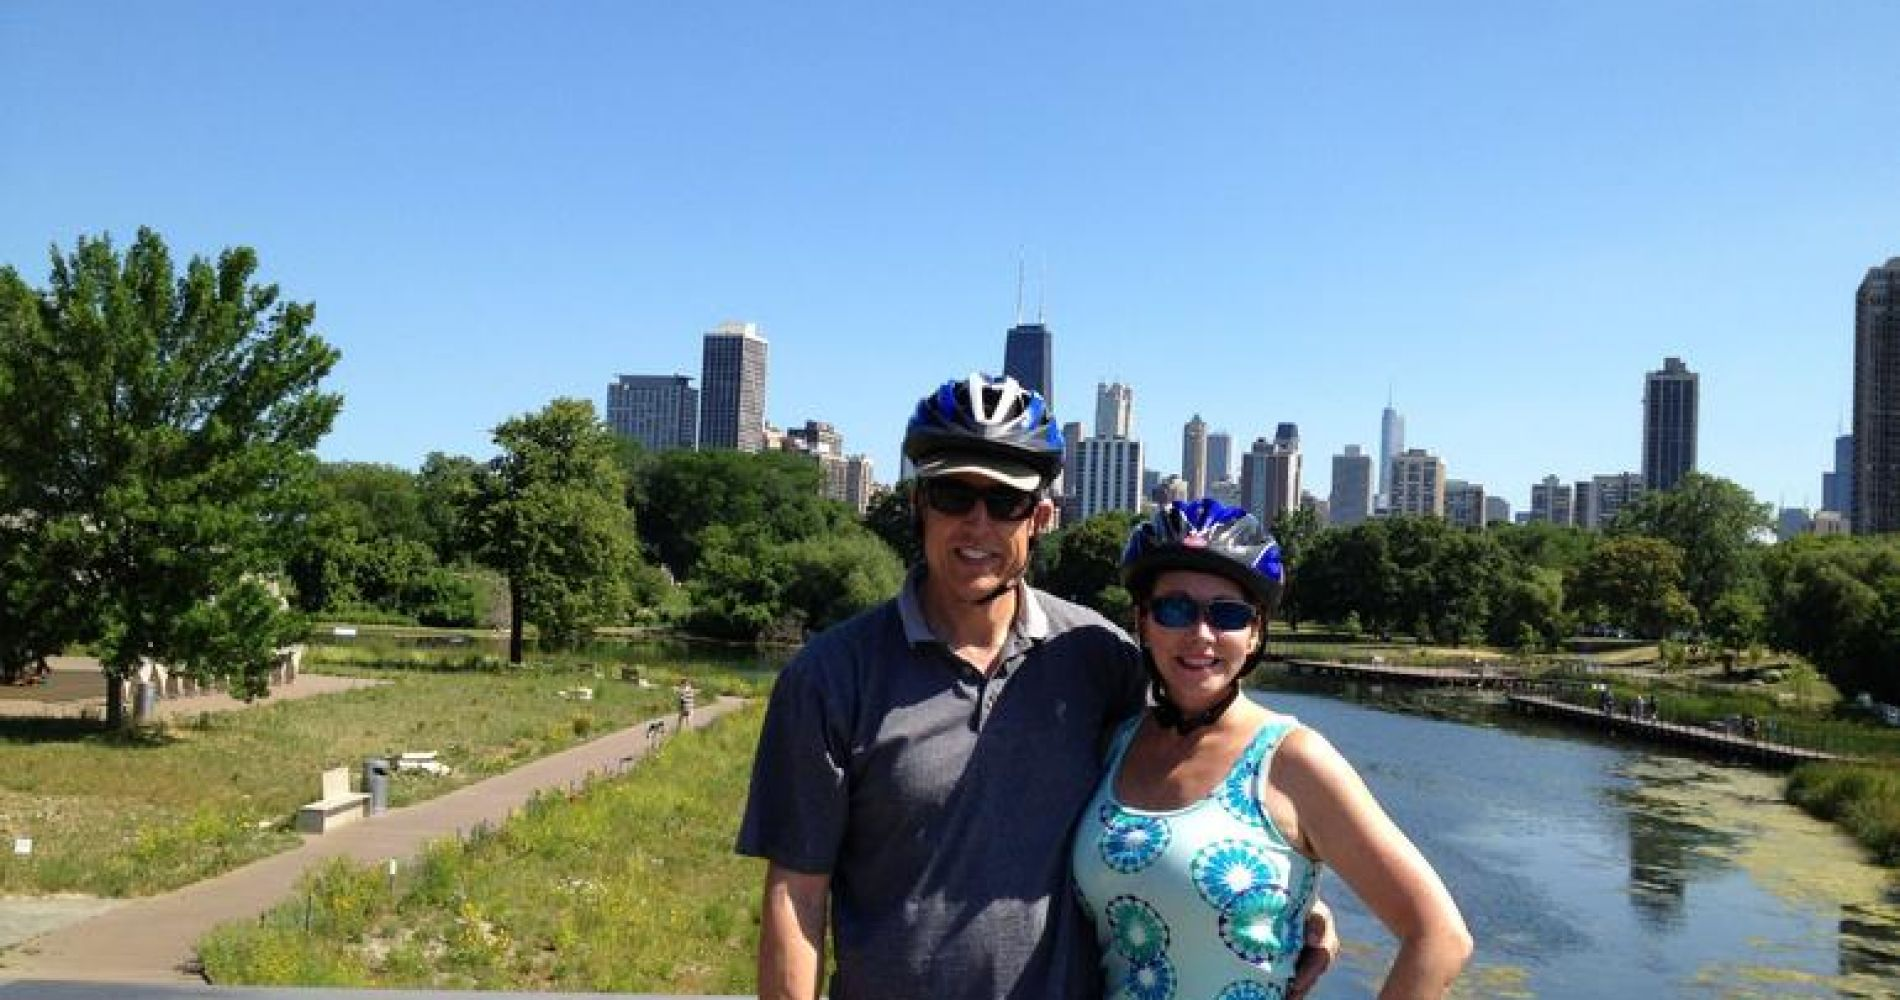 Bike Tour of Chicago's Lakefront Neighborhoods